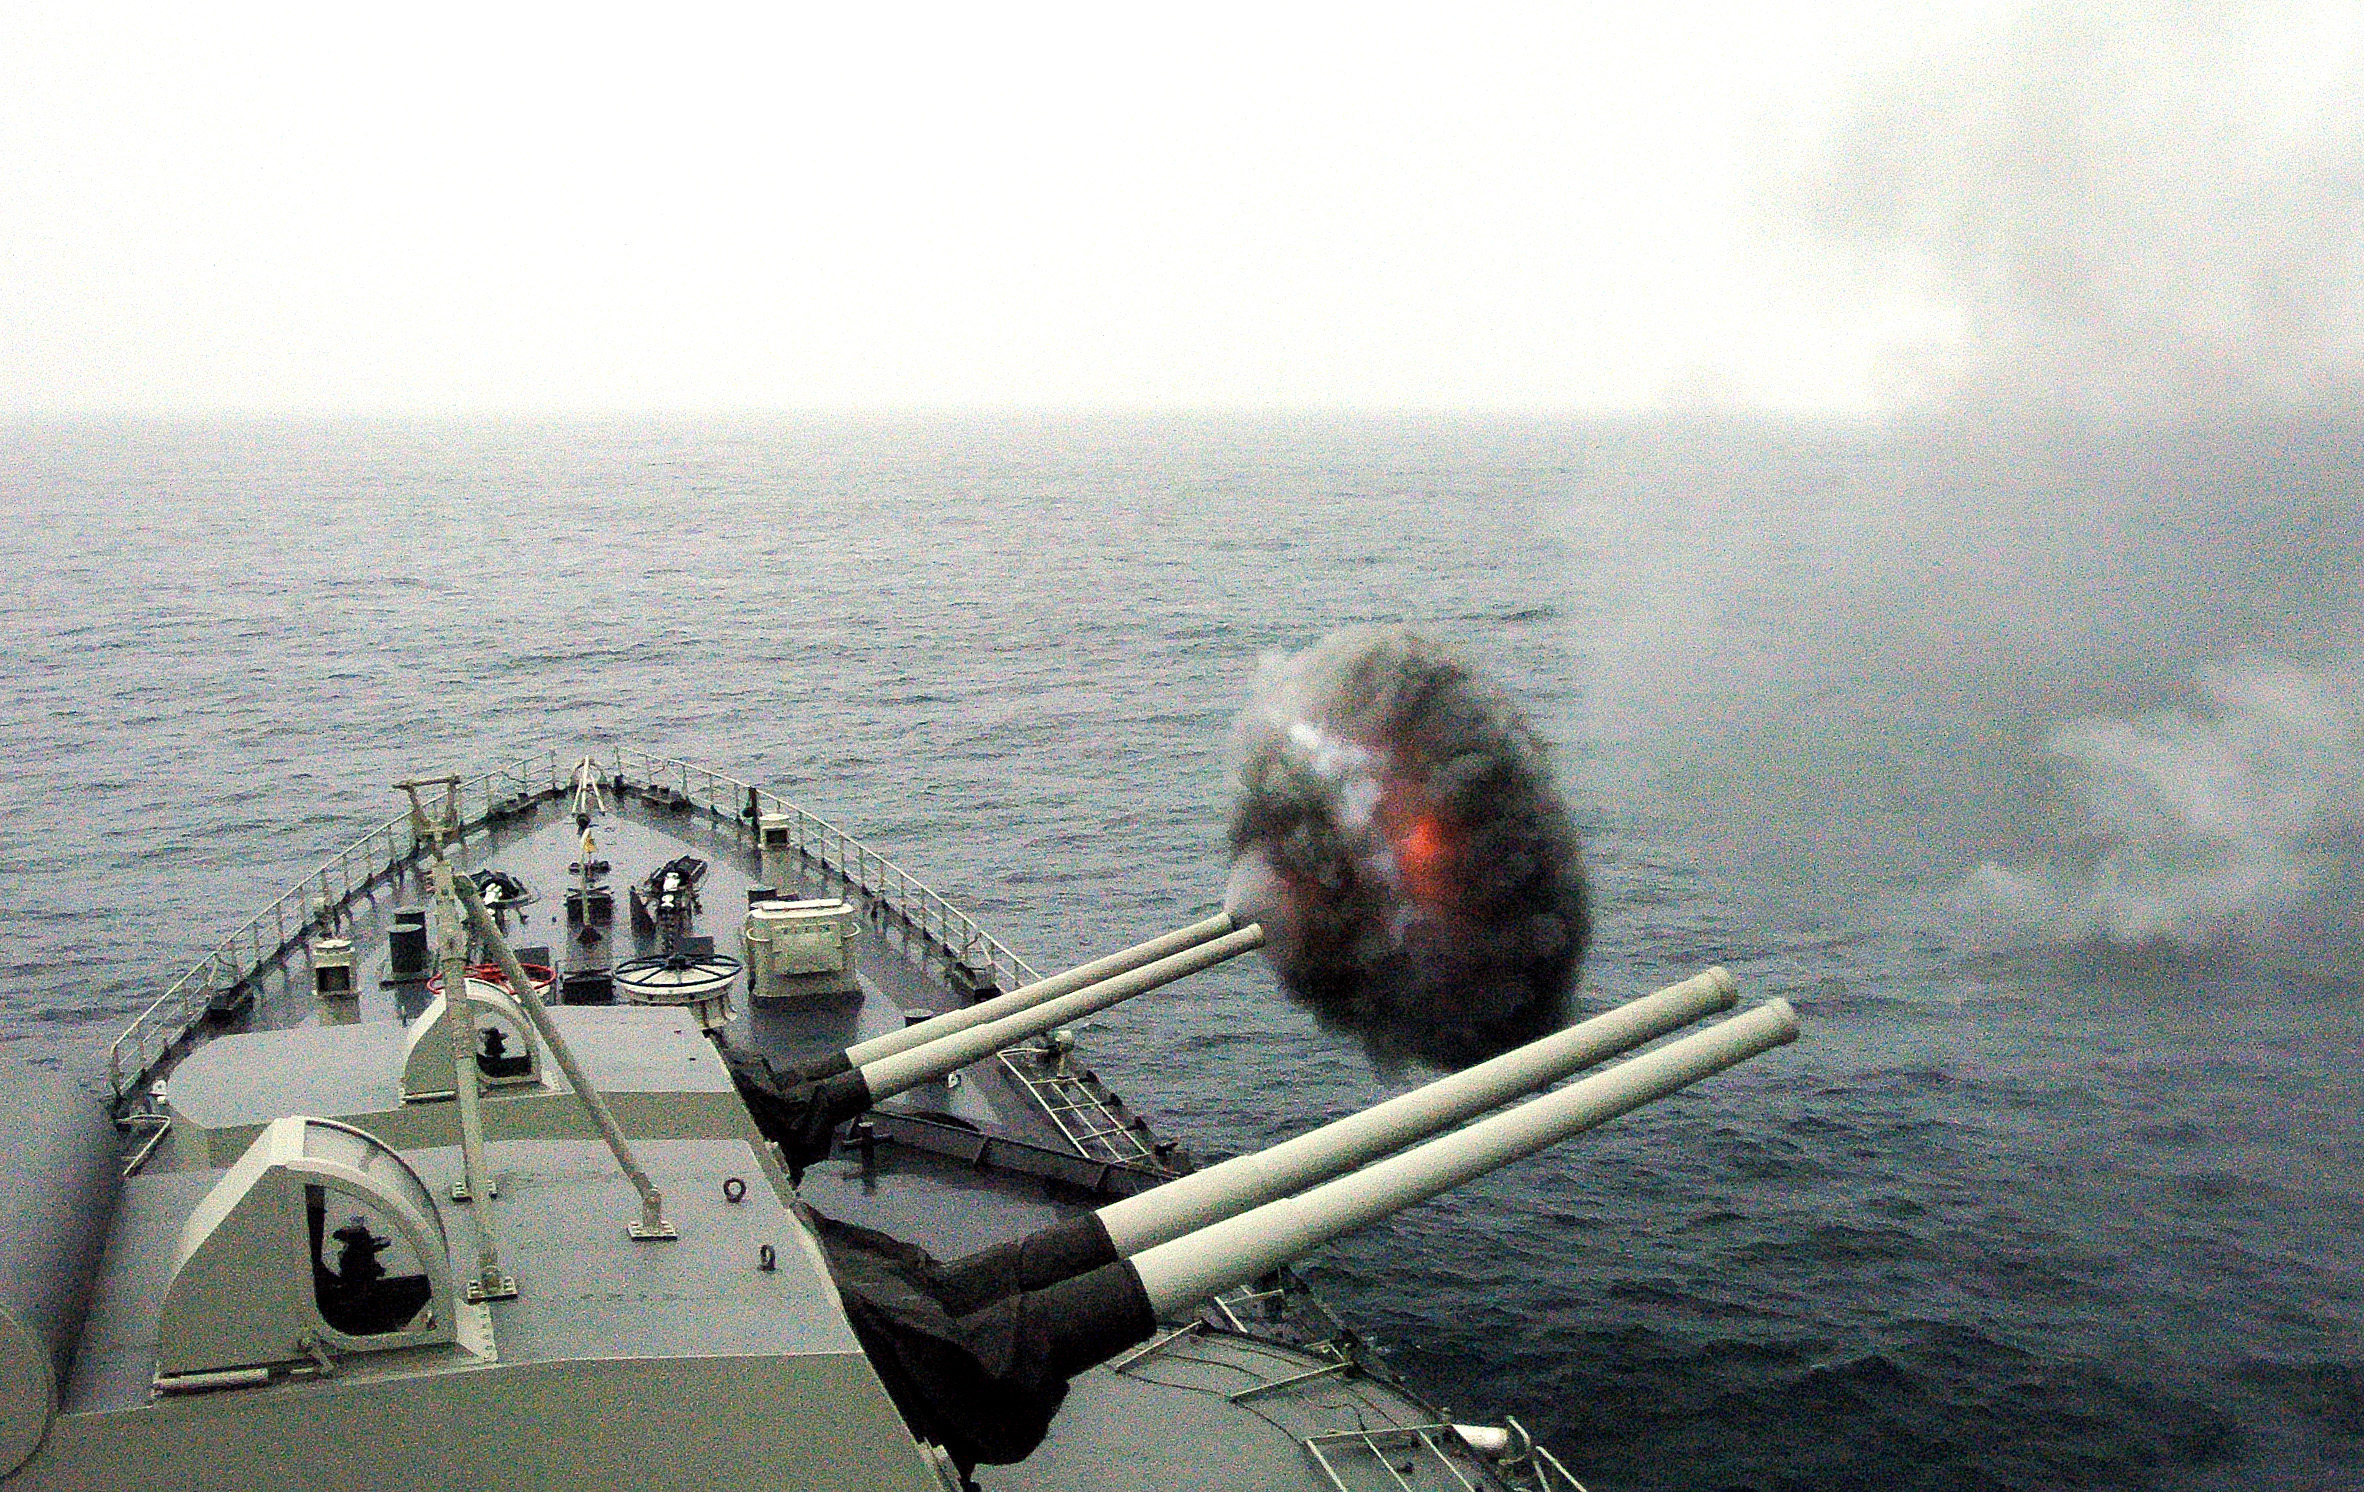 US Navy 040703-N-1464F-001 The Peruvian cruiser Almirante Grau CLM-81 fires one of its 15.2 cm caliber cannons